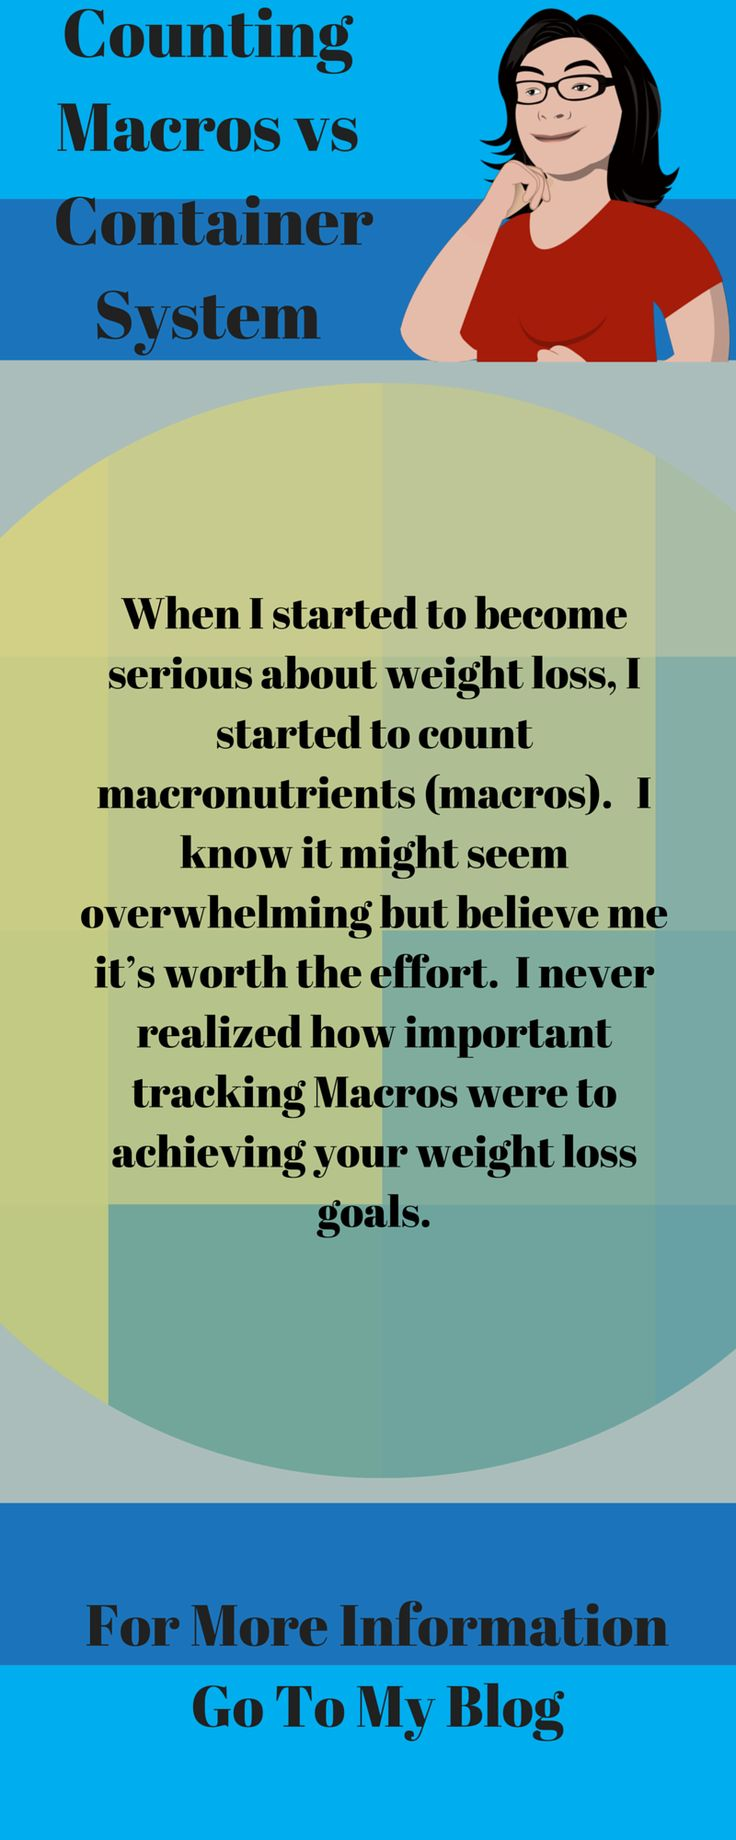 When I started to become serious about weight loss, I started to count macronutrients (macros).   I know it might seem overwhelming but believe me it's worth the effort.  I never realized how important tracking Macros were to achieving your weight loss goals.